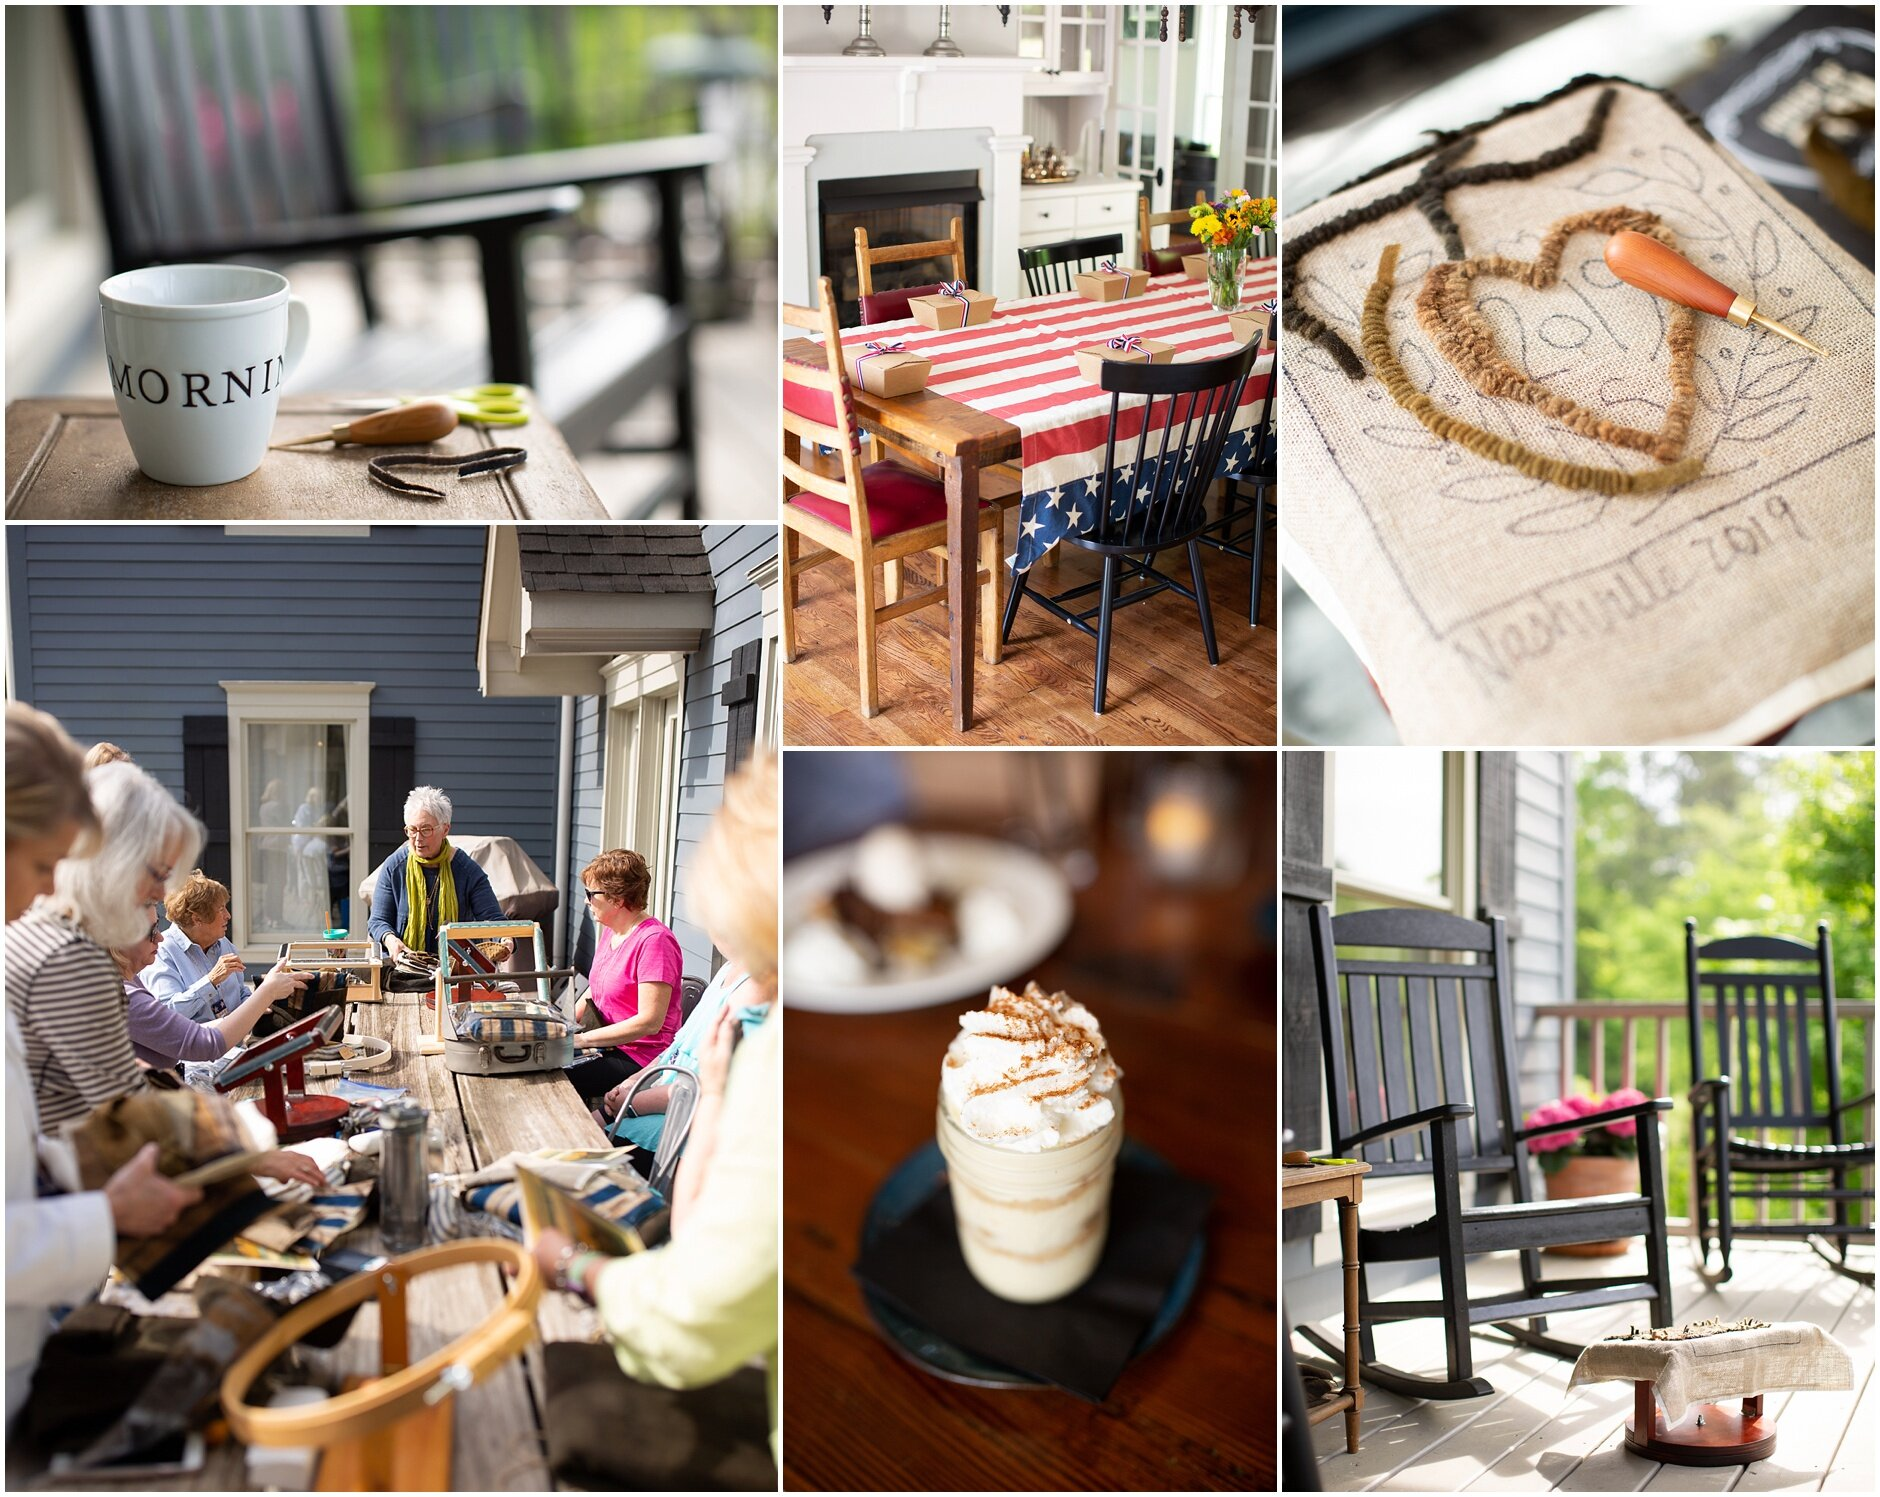 Just a few photos to share a few highlights from our retreat this past spring!